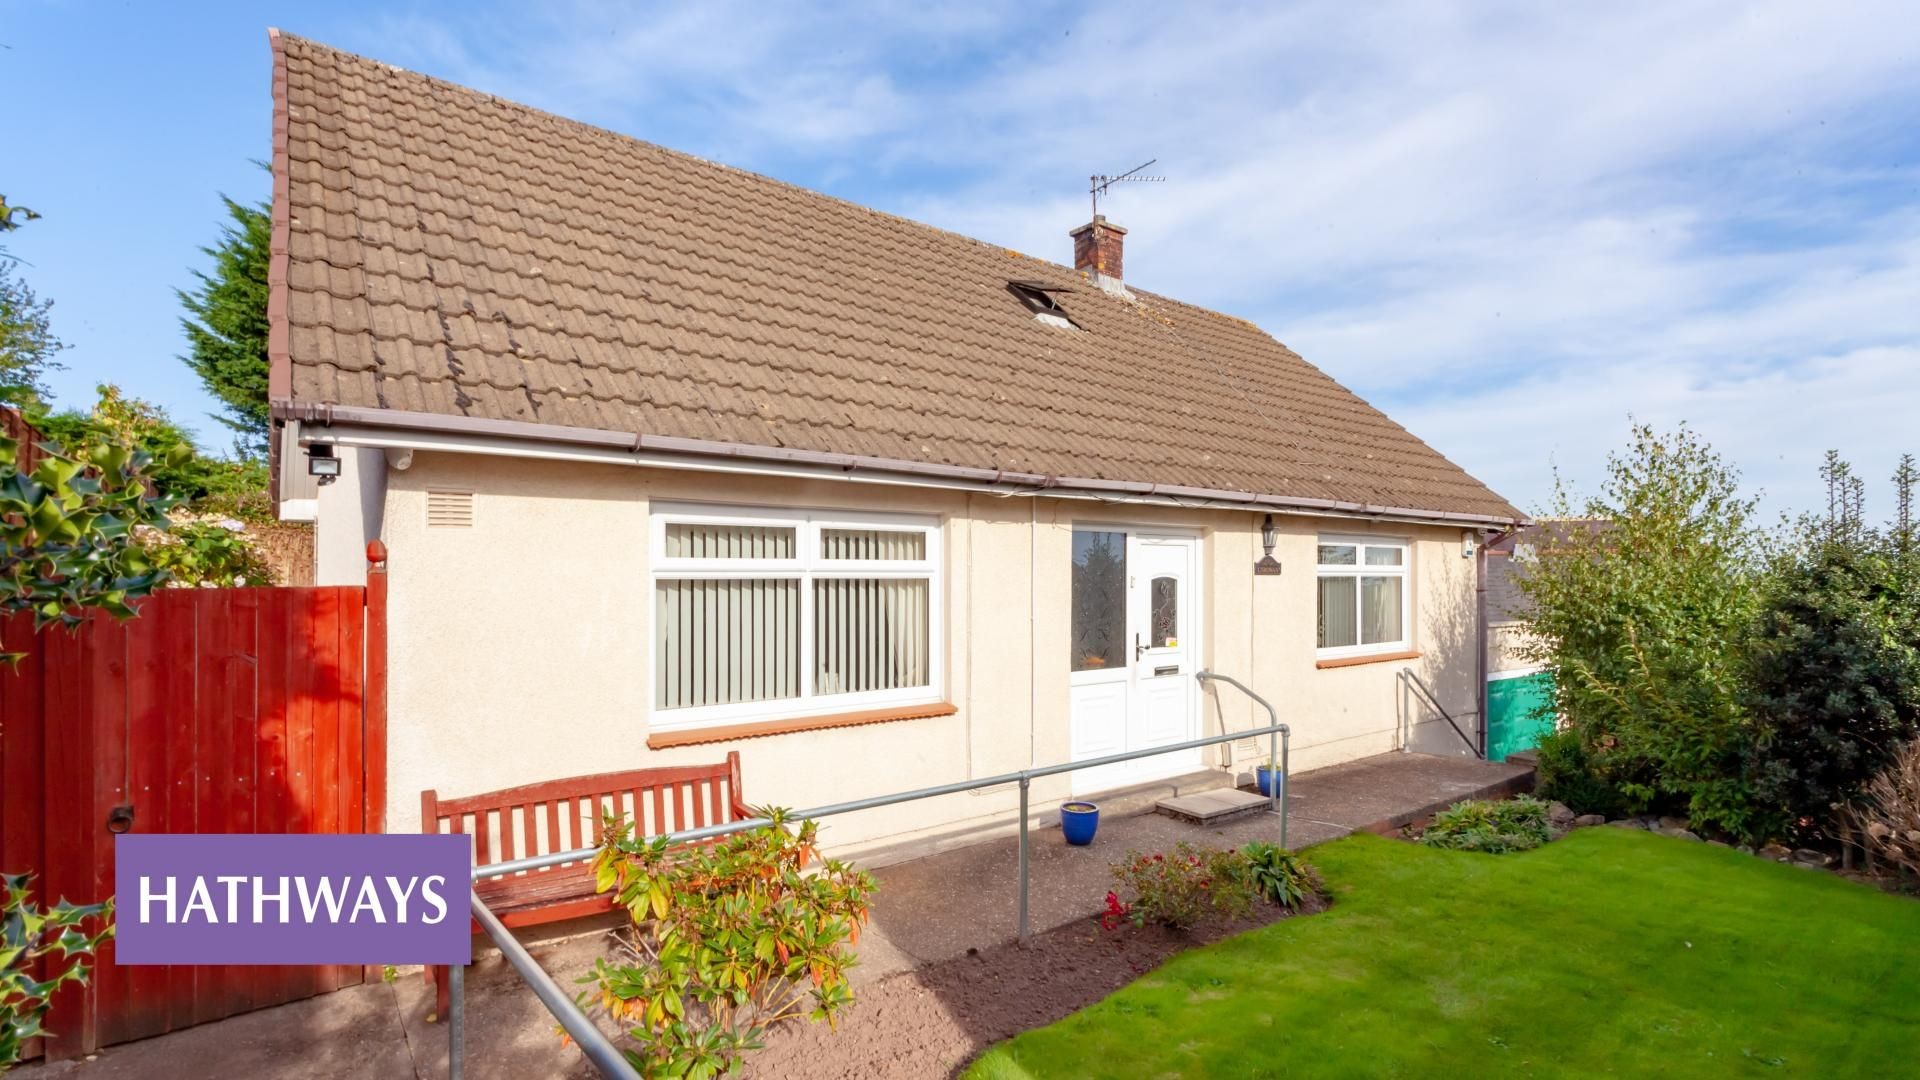 4 bed bungalow for sale in St. Dials Road - Property Image 1